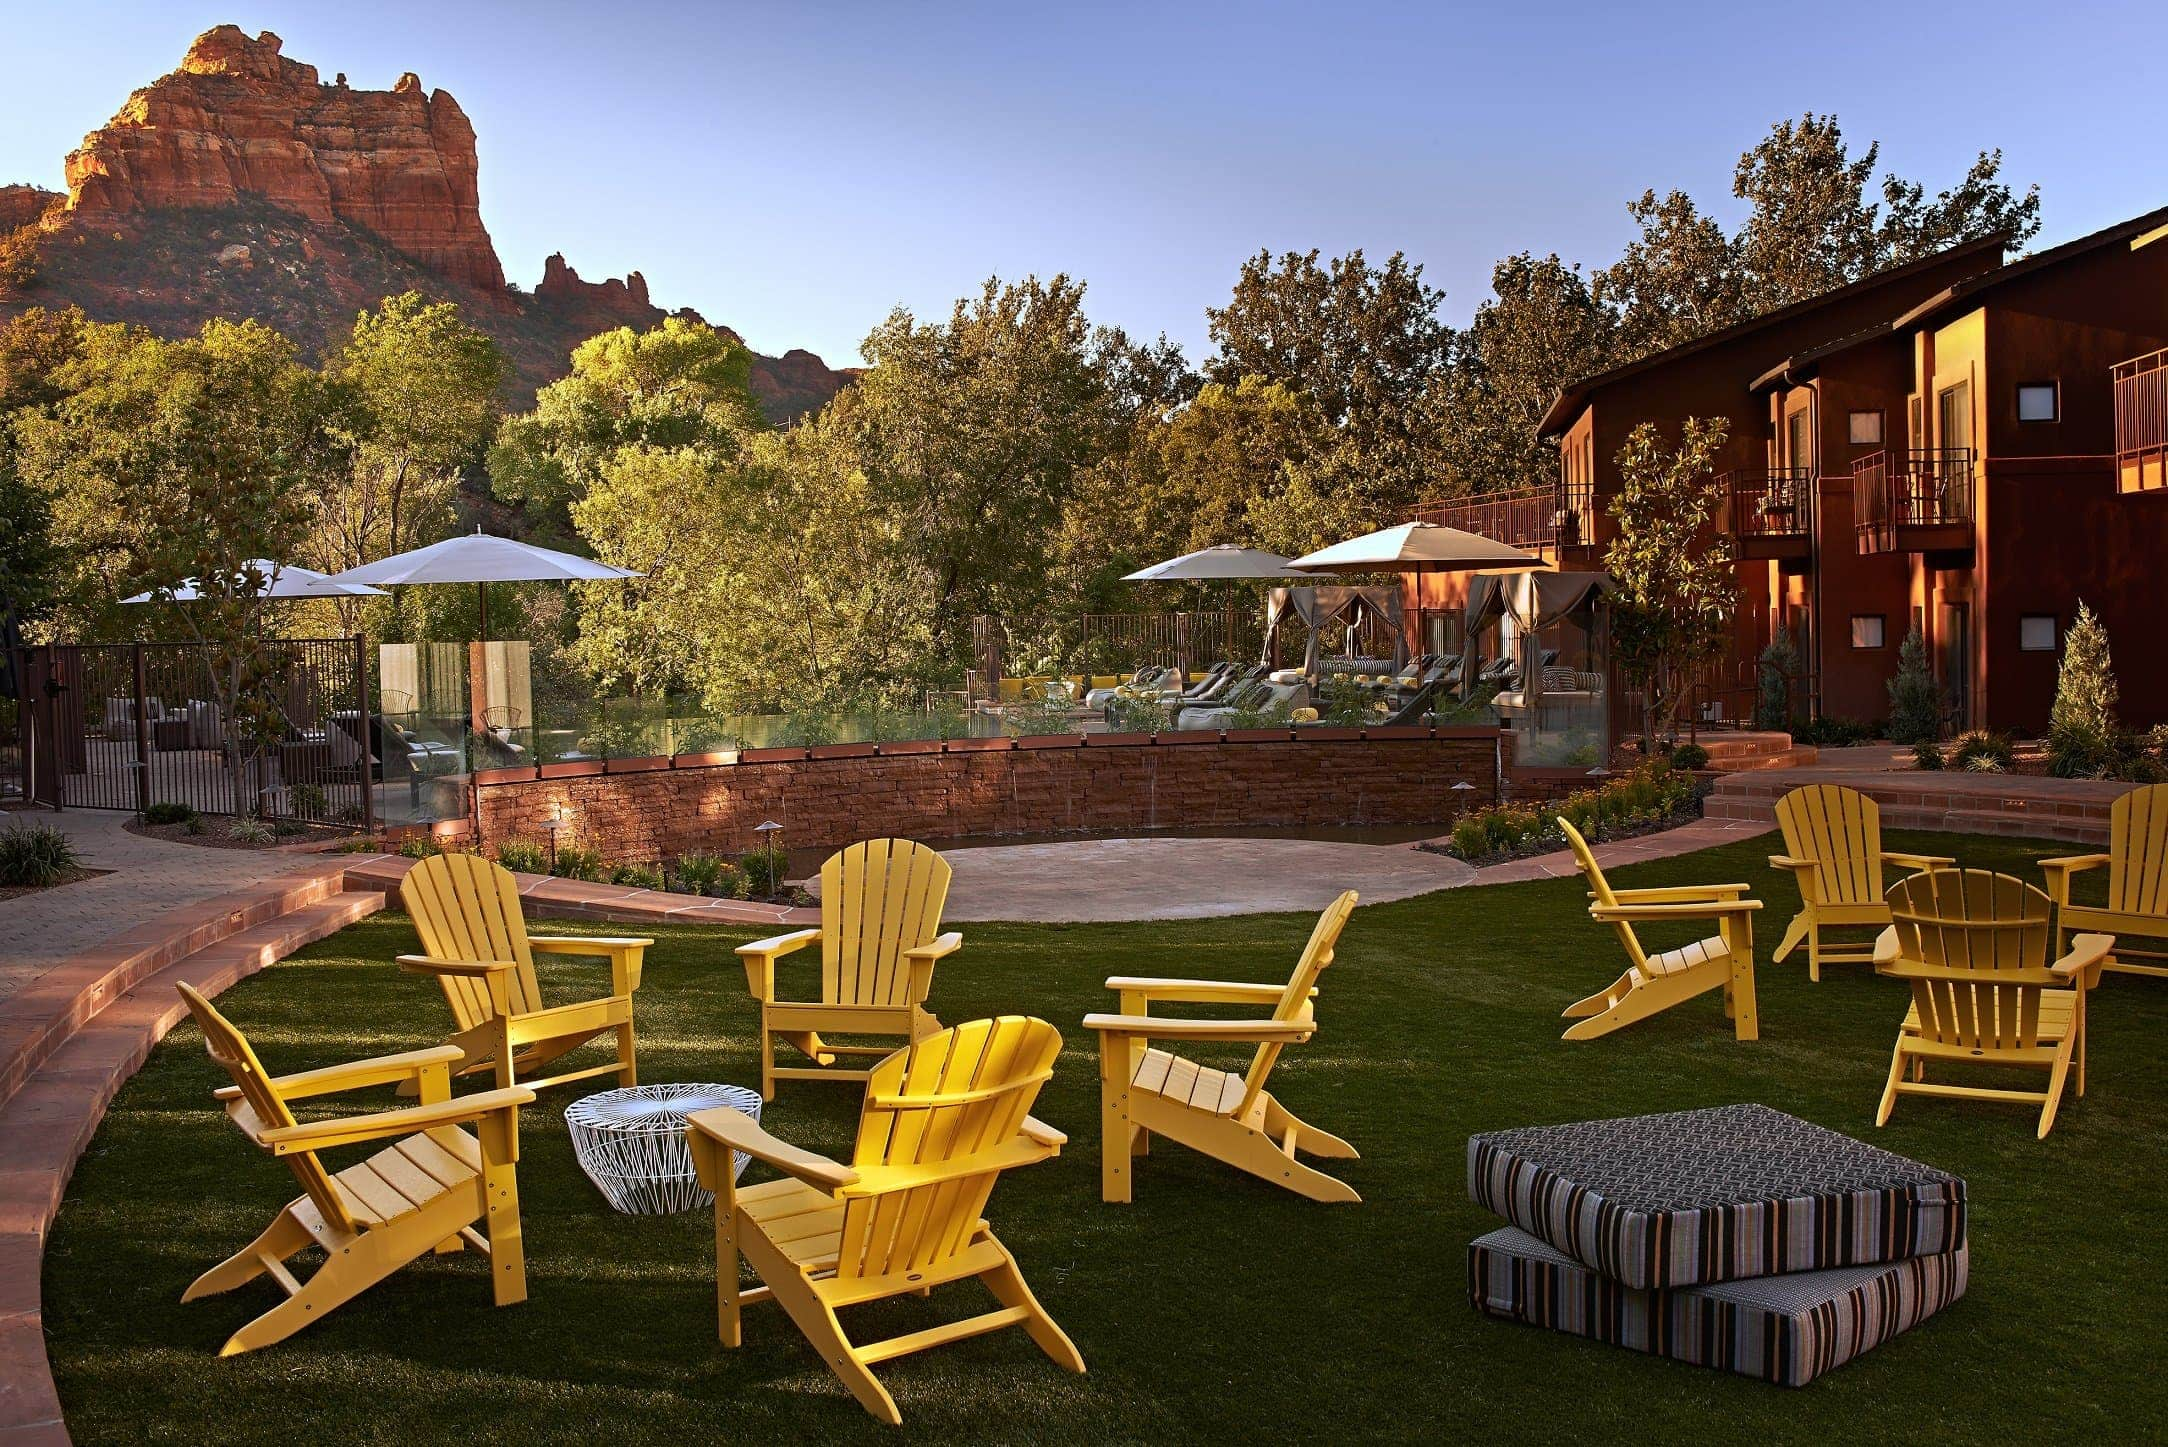 Recharge in Scenic Sedona during hectic holidays with Kimpton special package